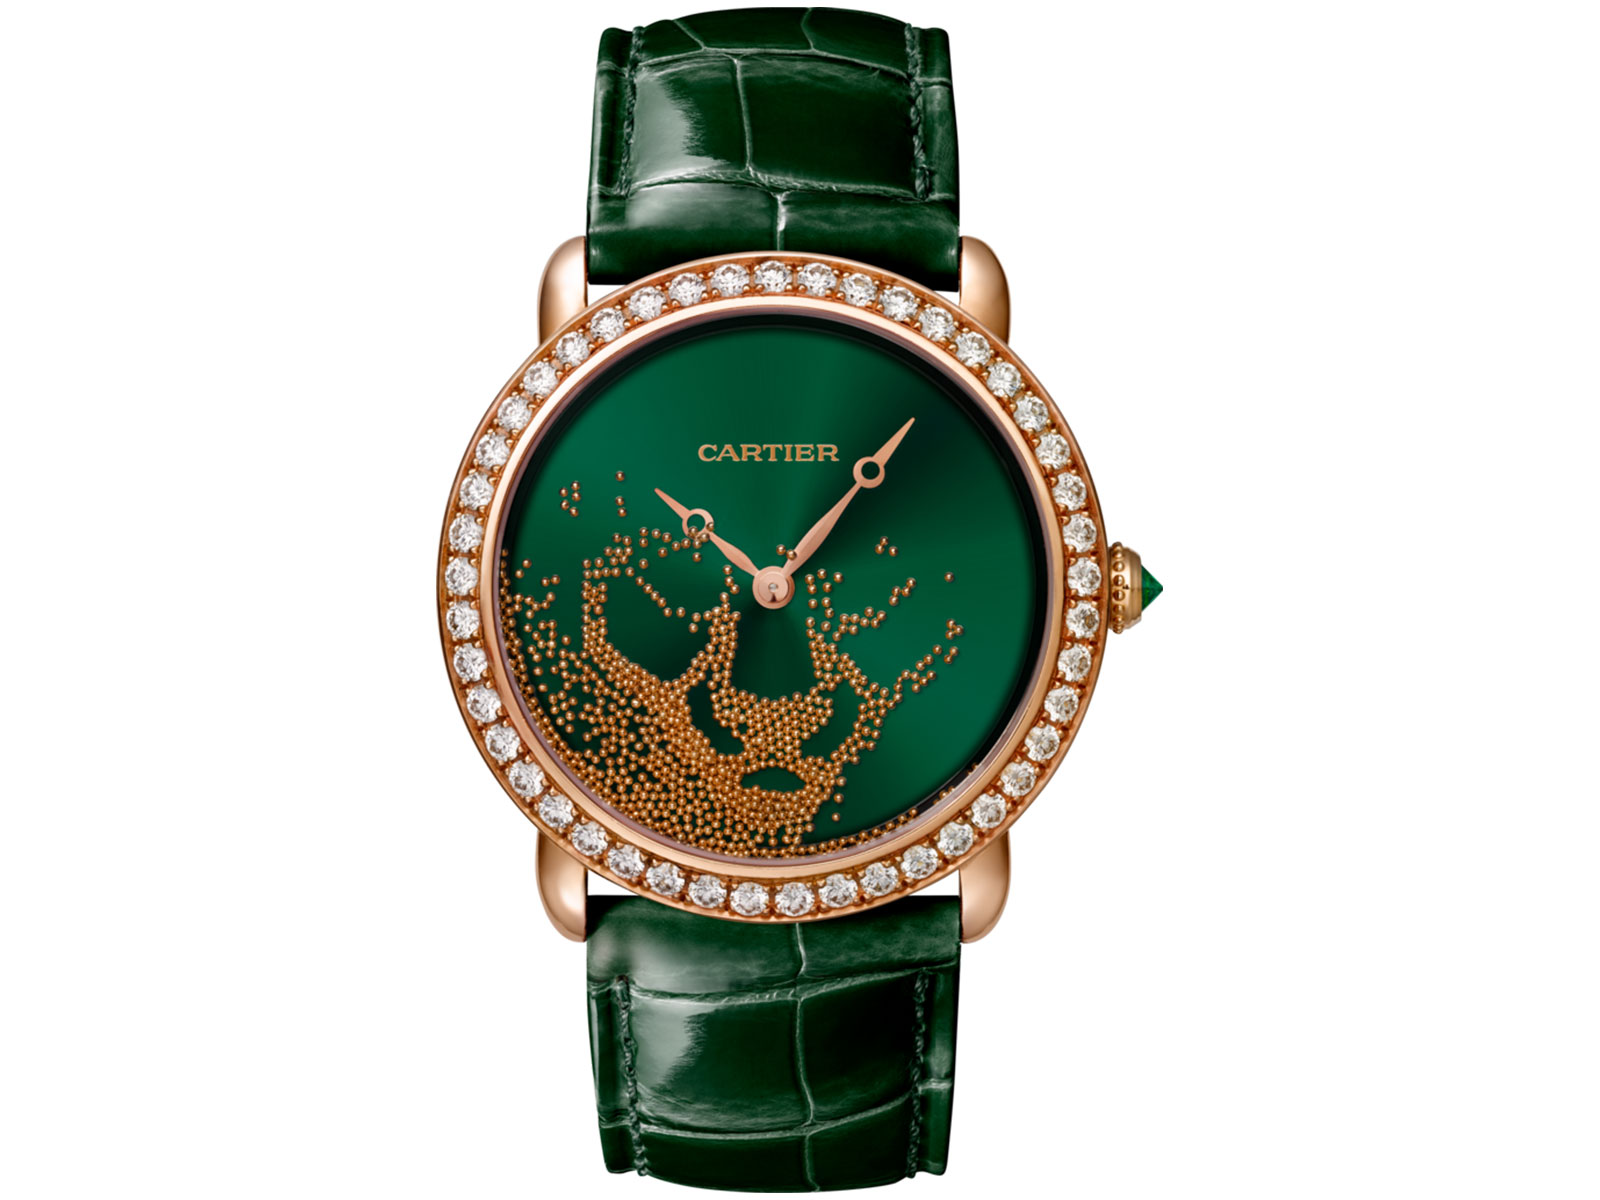 HP-01261-Cartier-Panthere-Collection-Sihh2018-Green-2.jpg